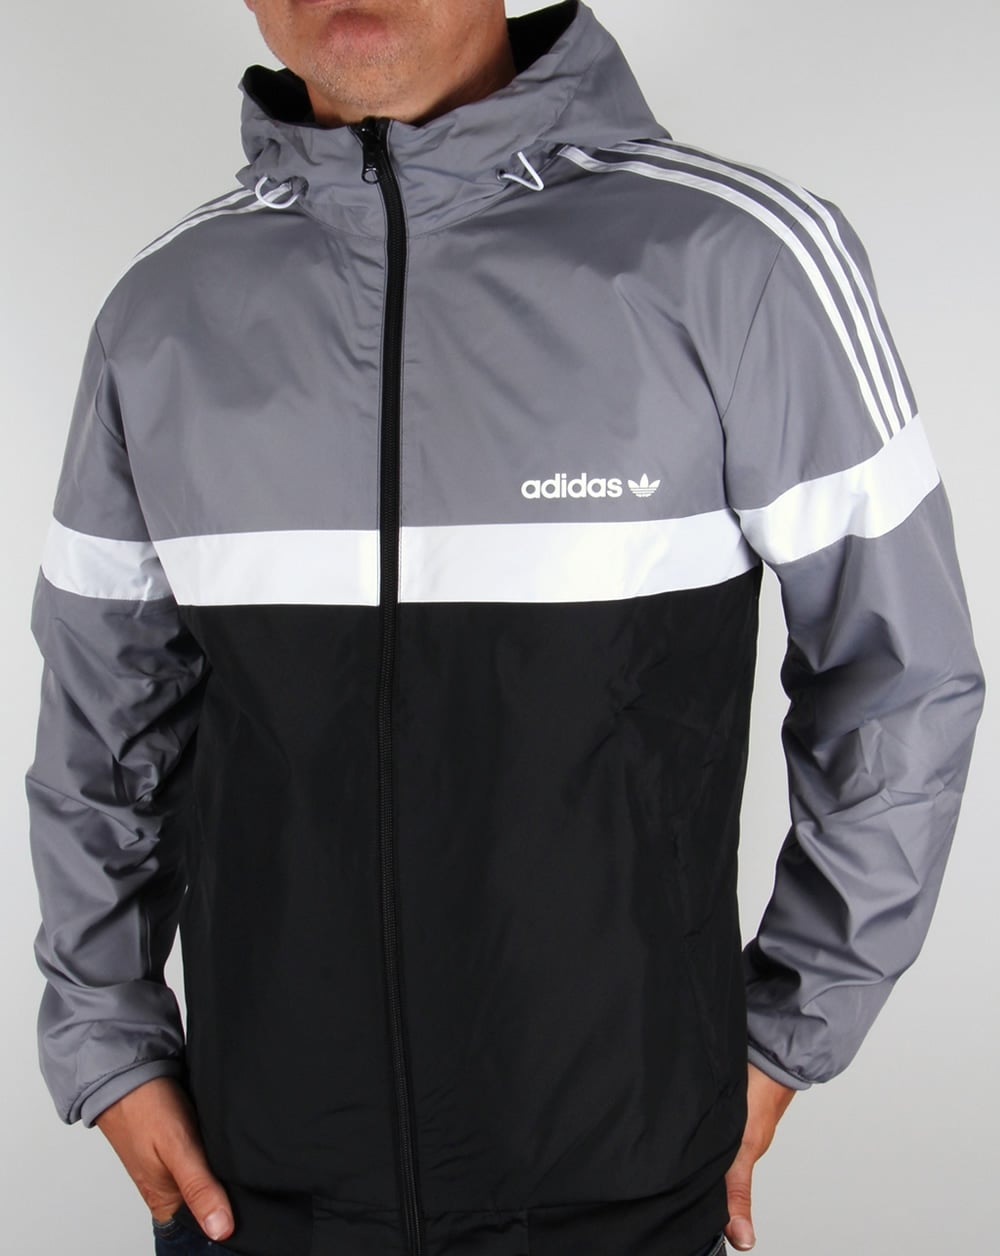 Buy adidas jacket Black >off62%)